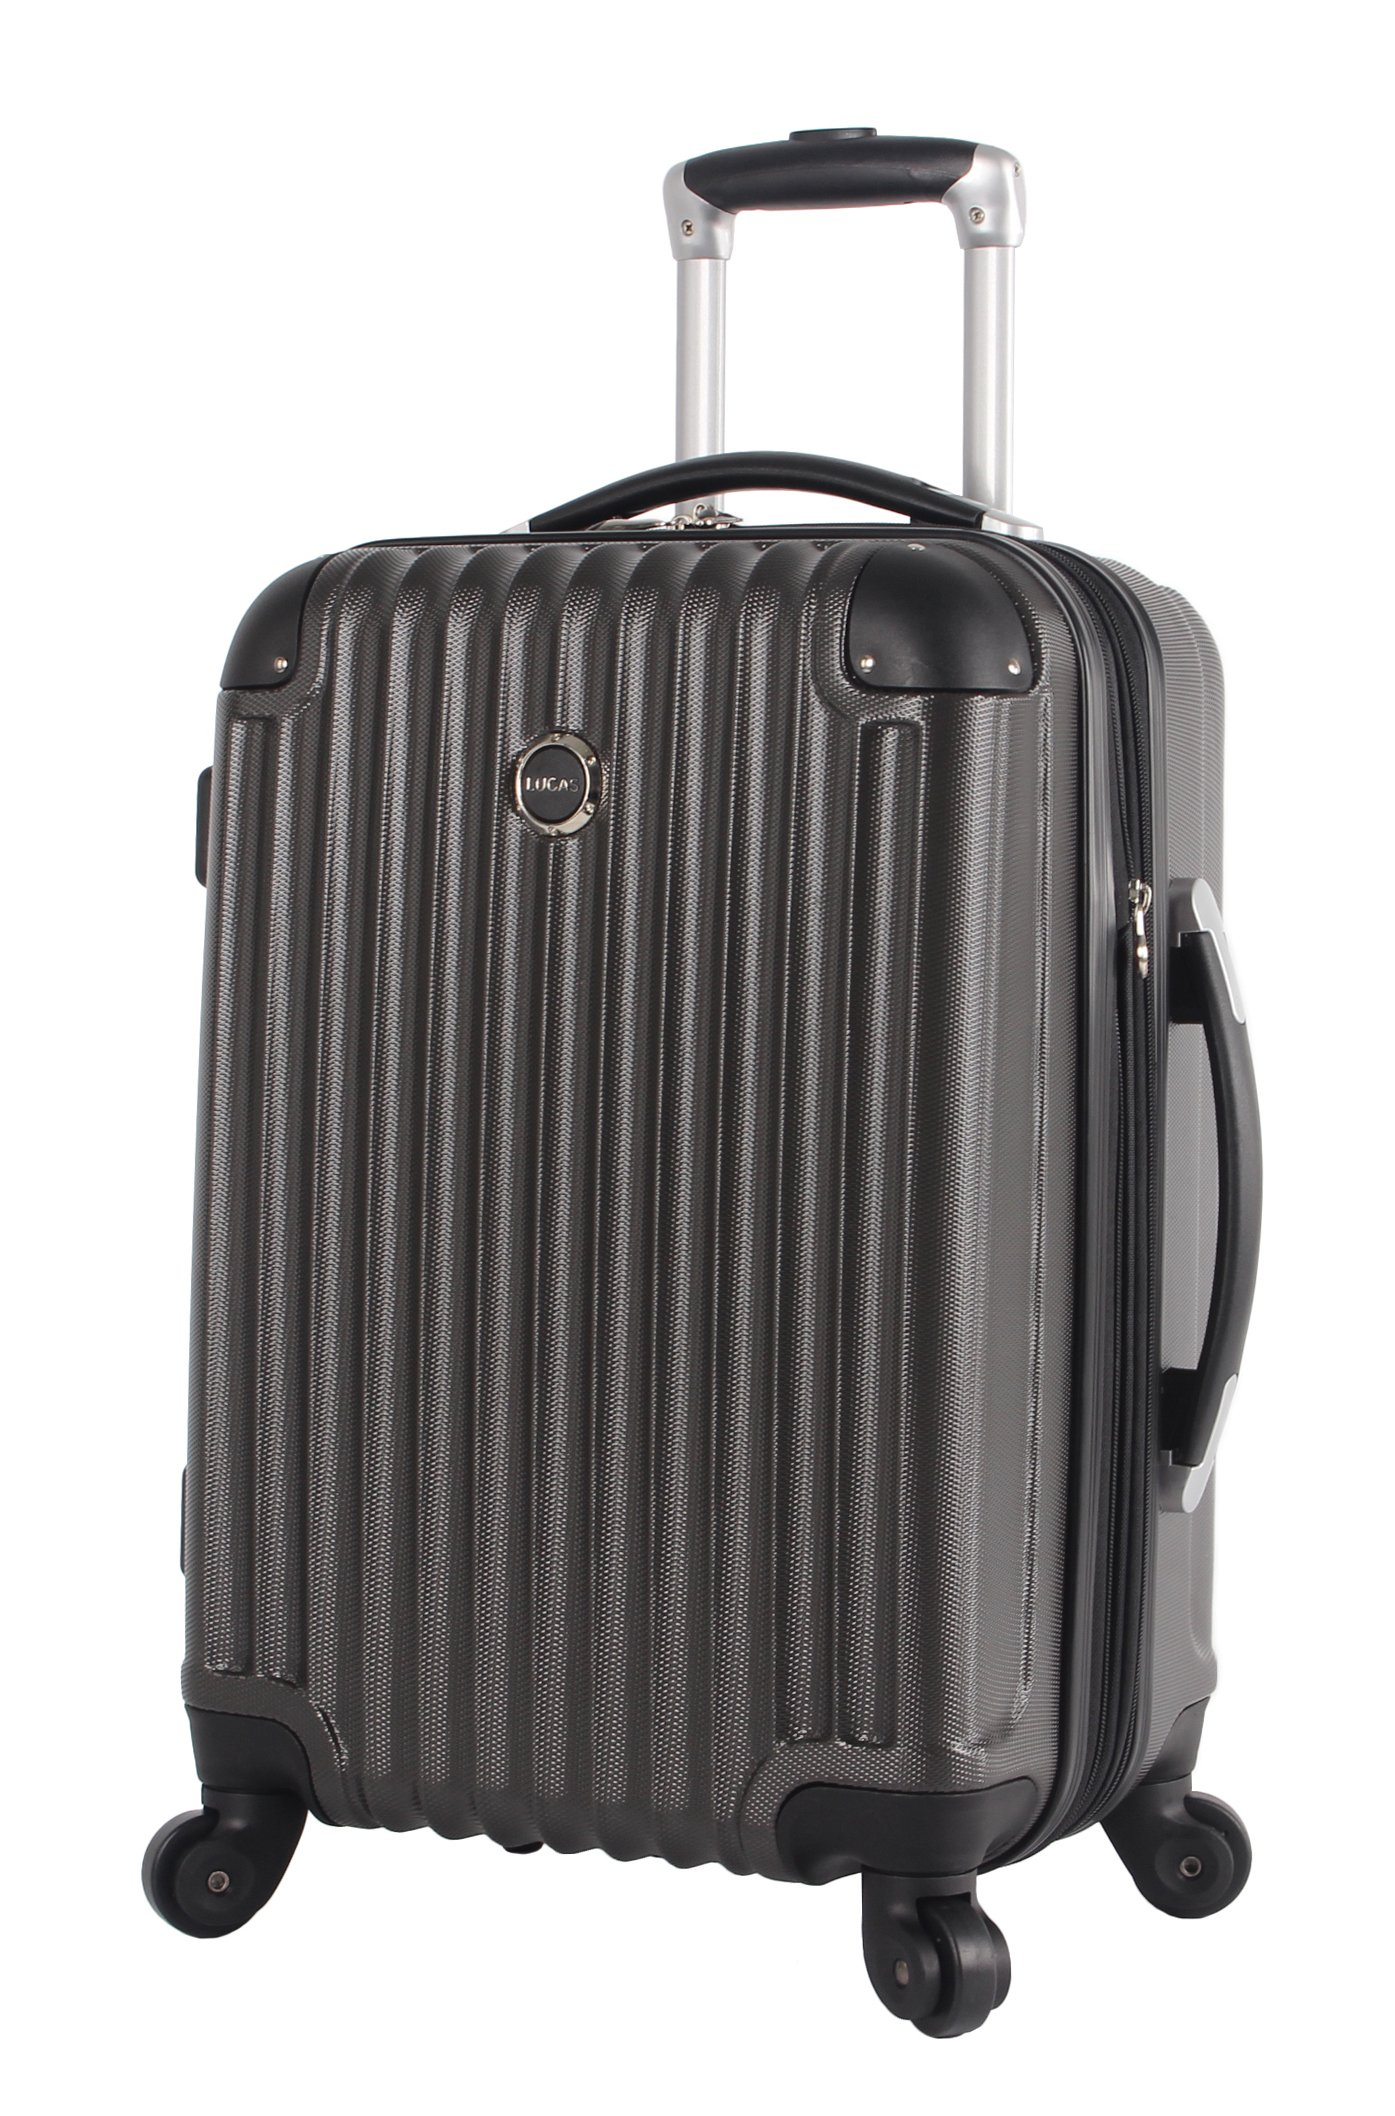 Lucas Outlander Carry On Hard Case 20 inch Expandable Rolling Suitcase With Spinner Wheels (20in, Graphite)